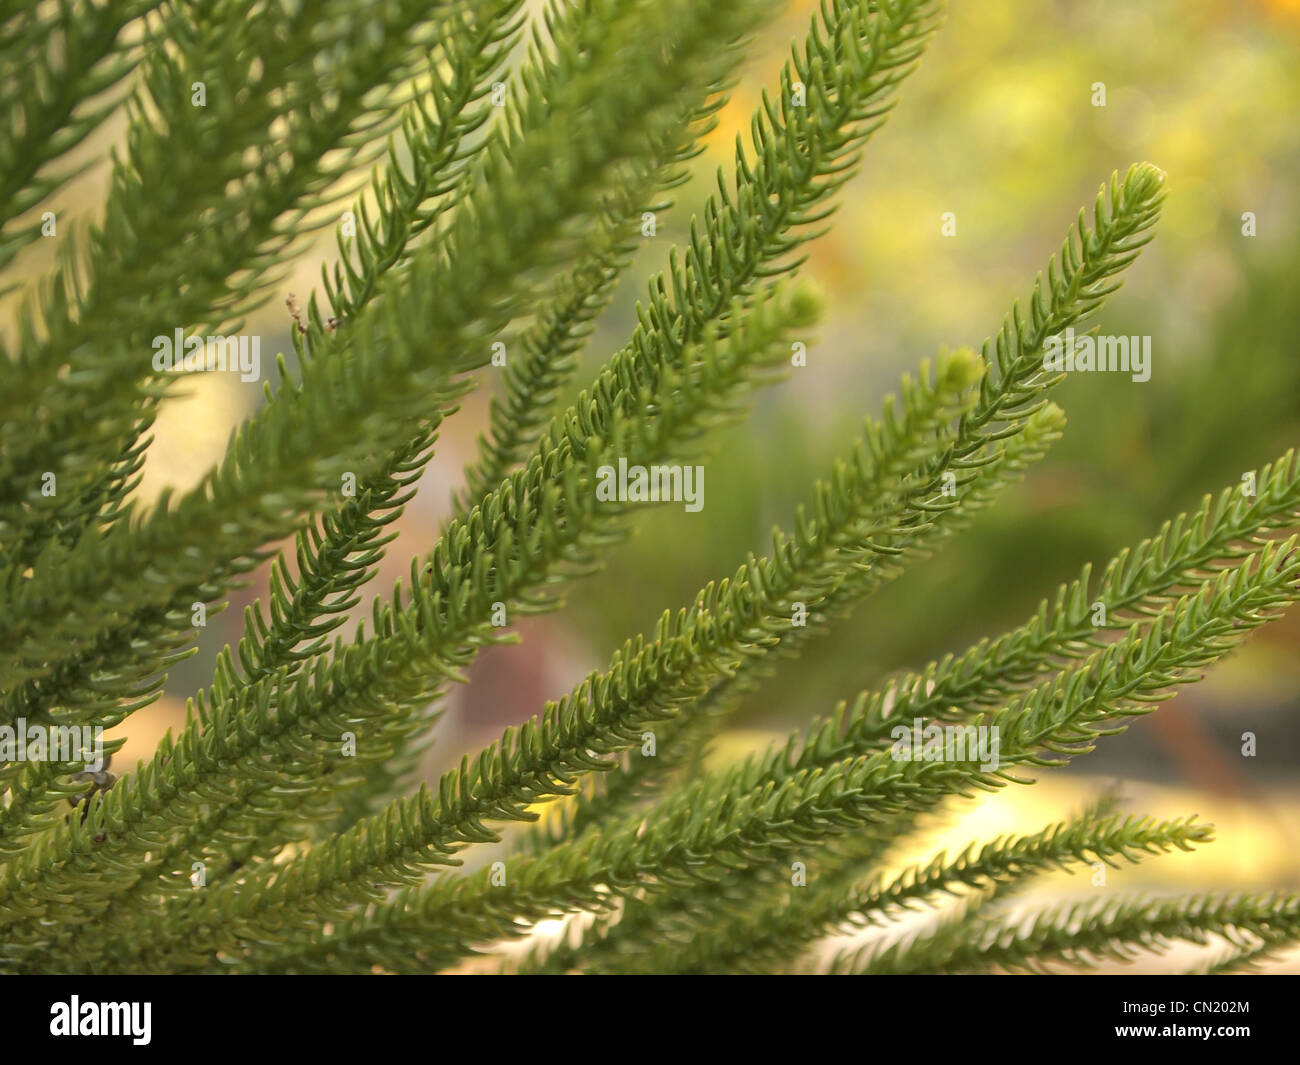 The leaves of pine - Stock Image